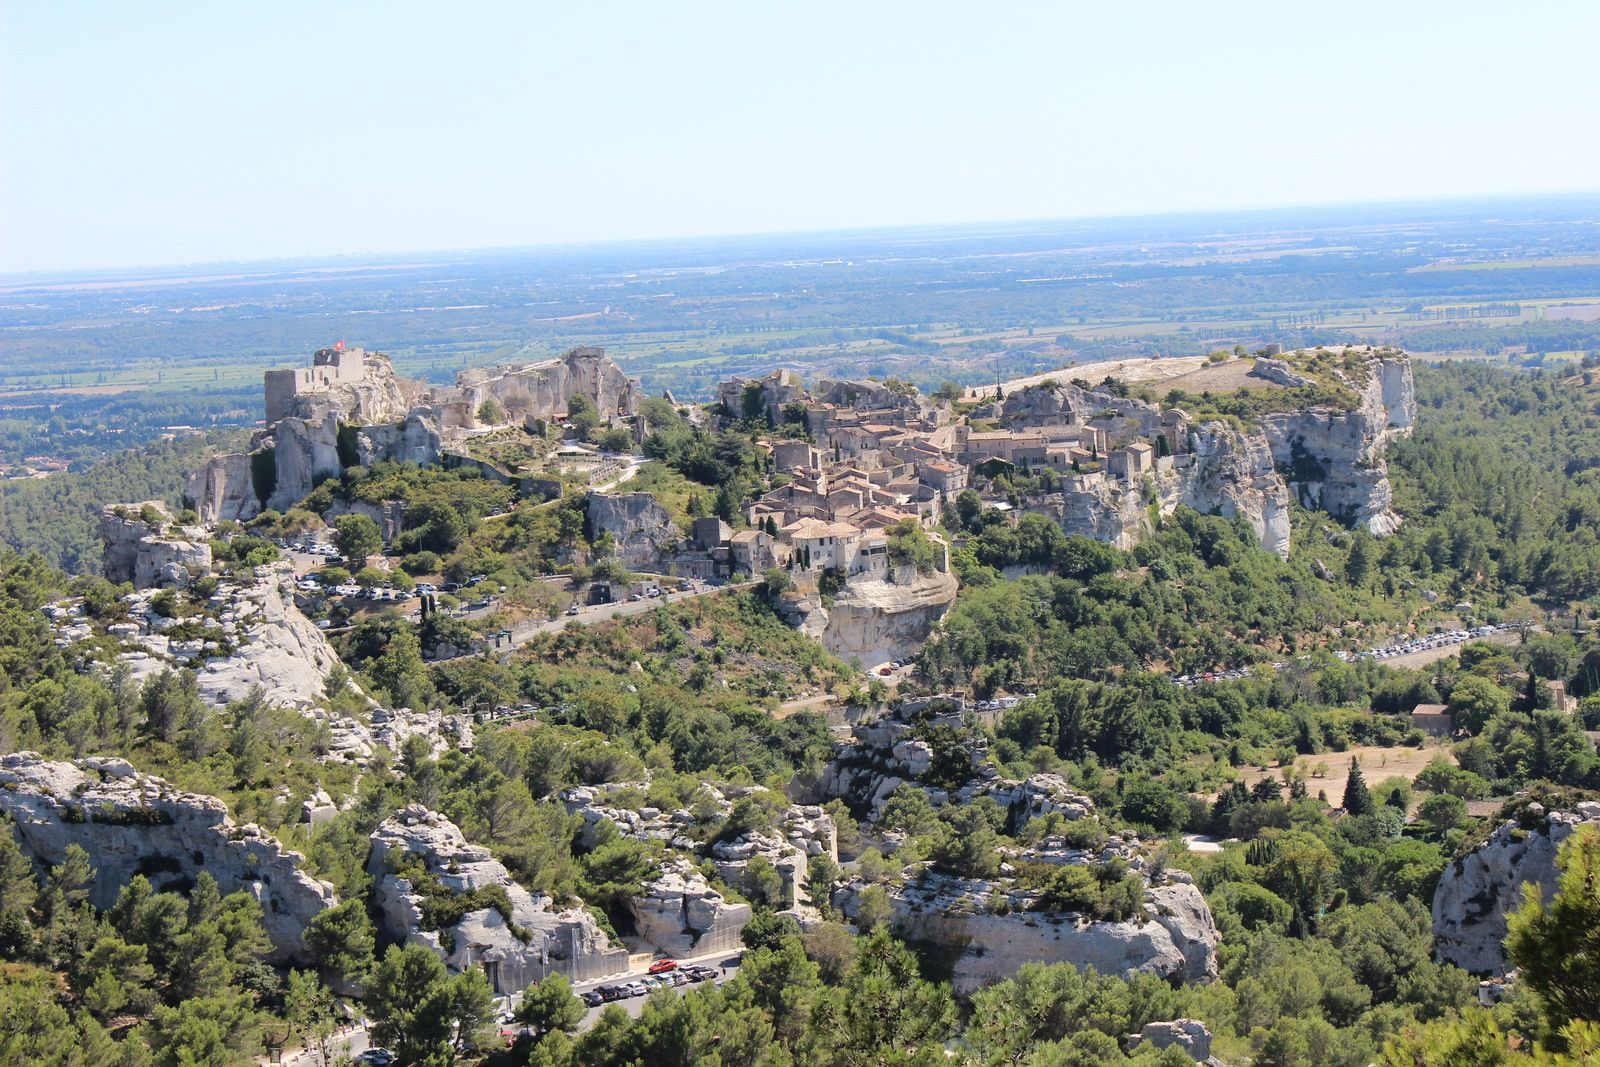 Les Baux de Provence  (Photo F1HQM)